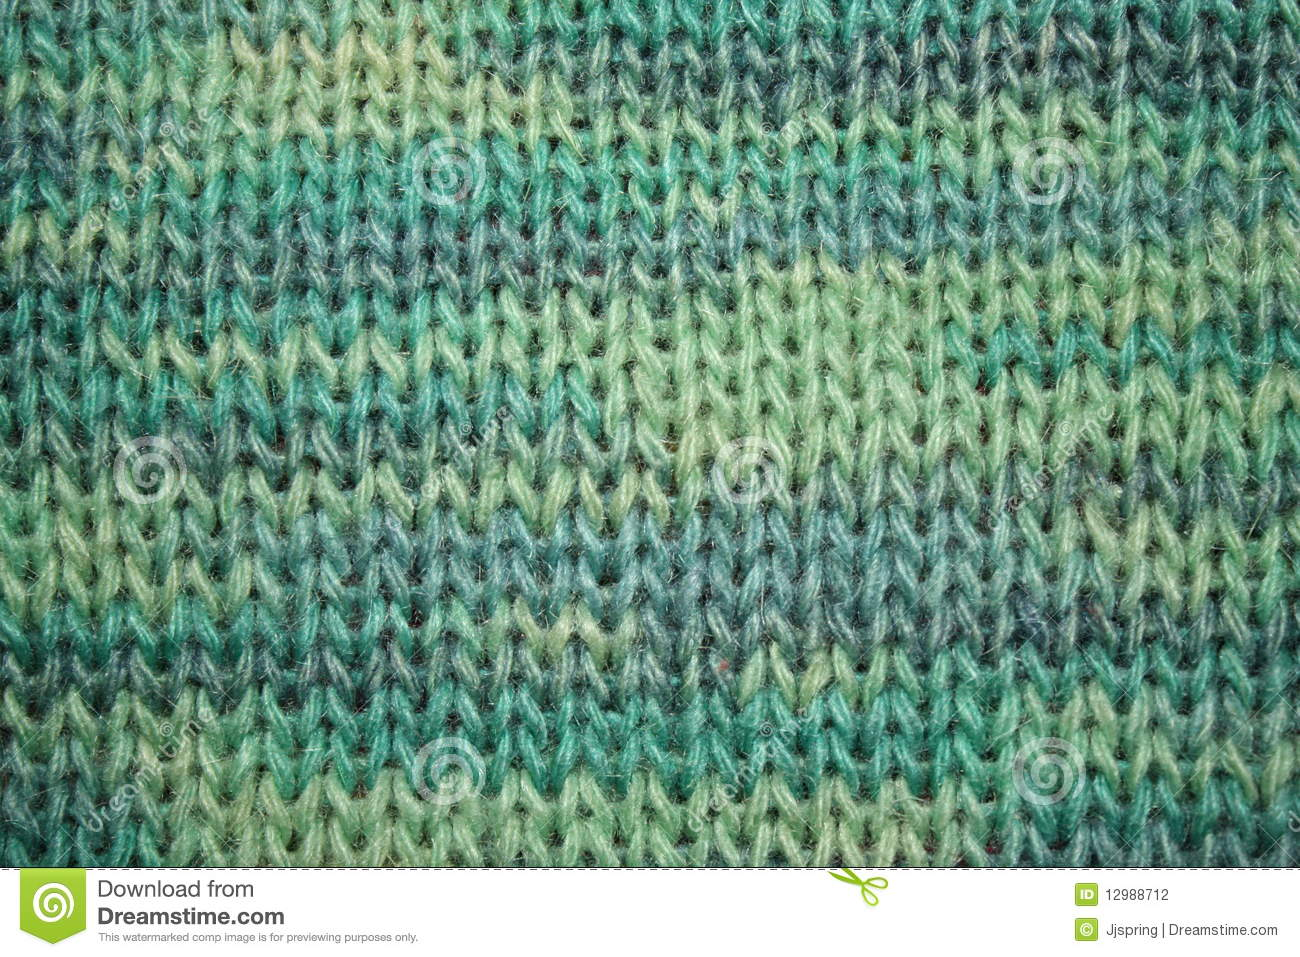 Green Wool Texture Of Pastel Shades Stock Photo - Image: 12988712